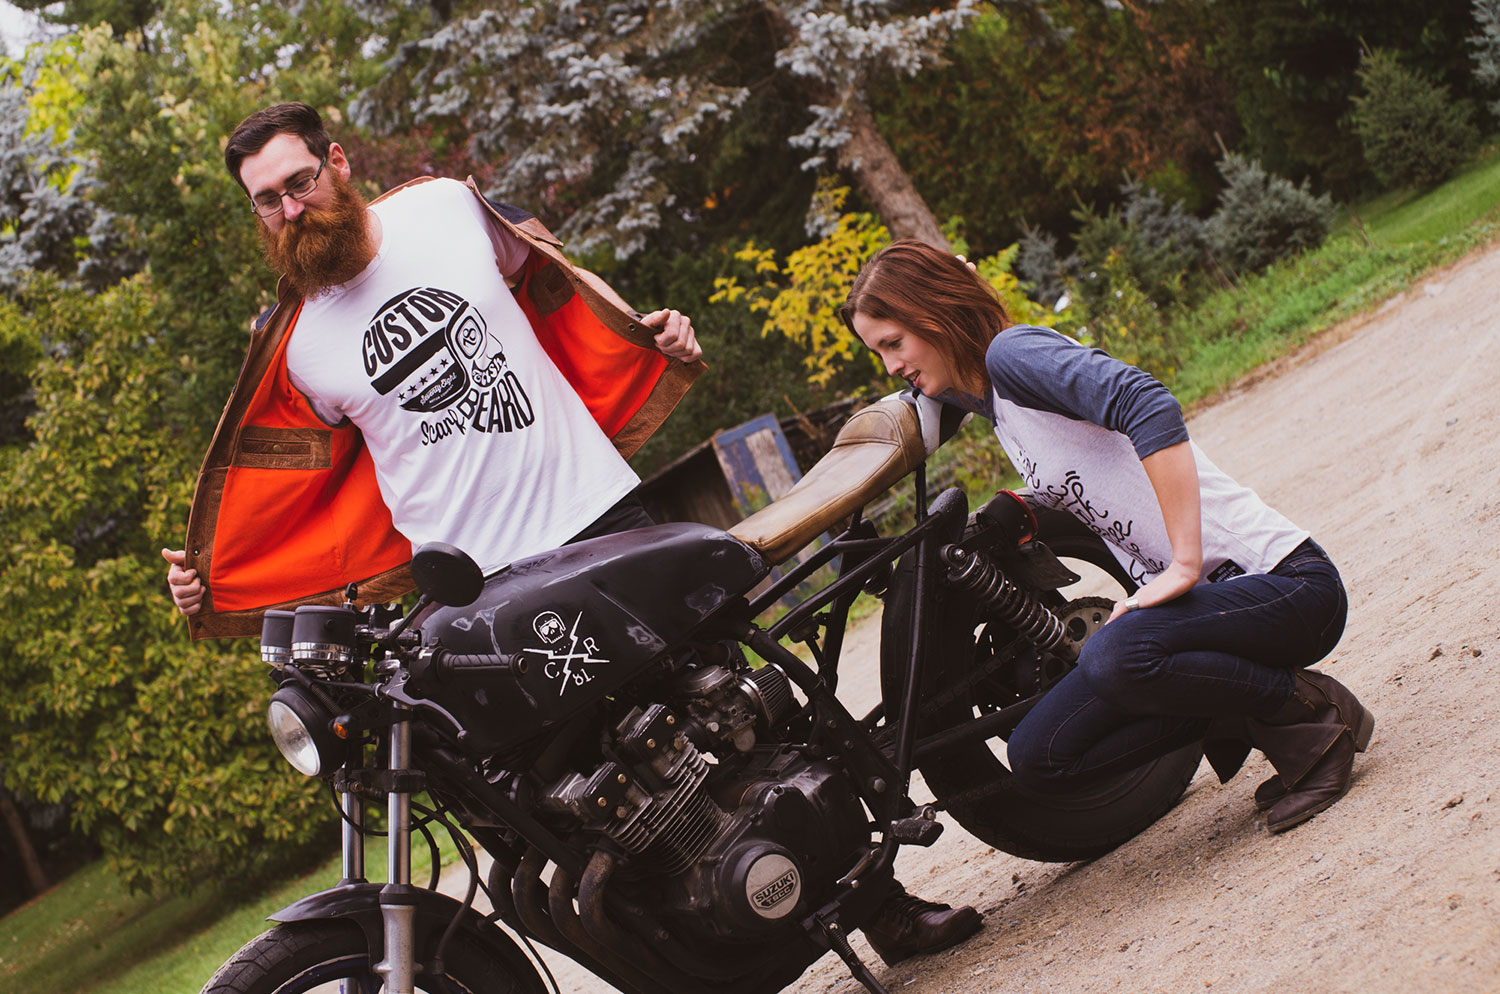 Fashion photography of motorcycle apparel